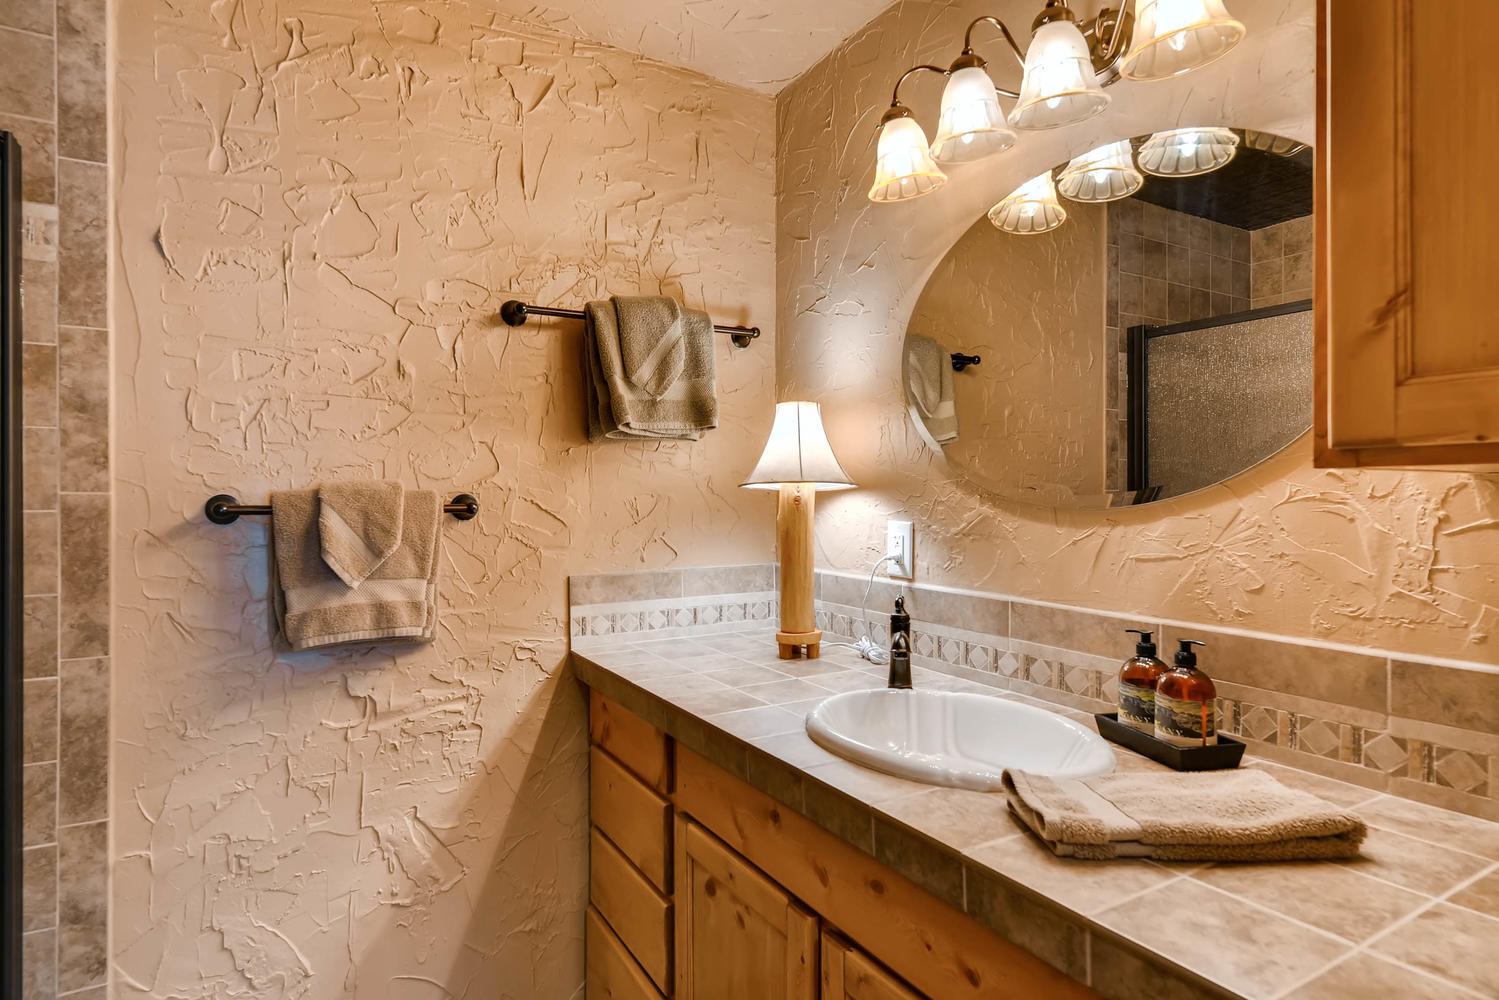 The lower level en suite bath has a large vanity and shower.